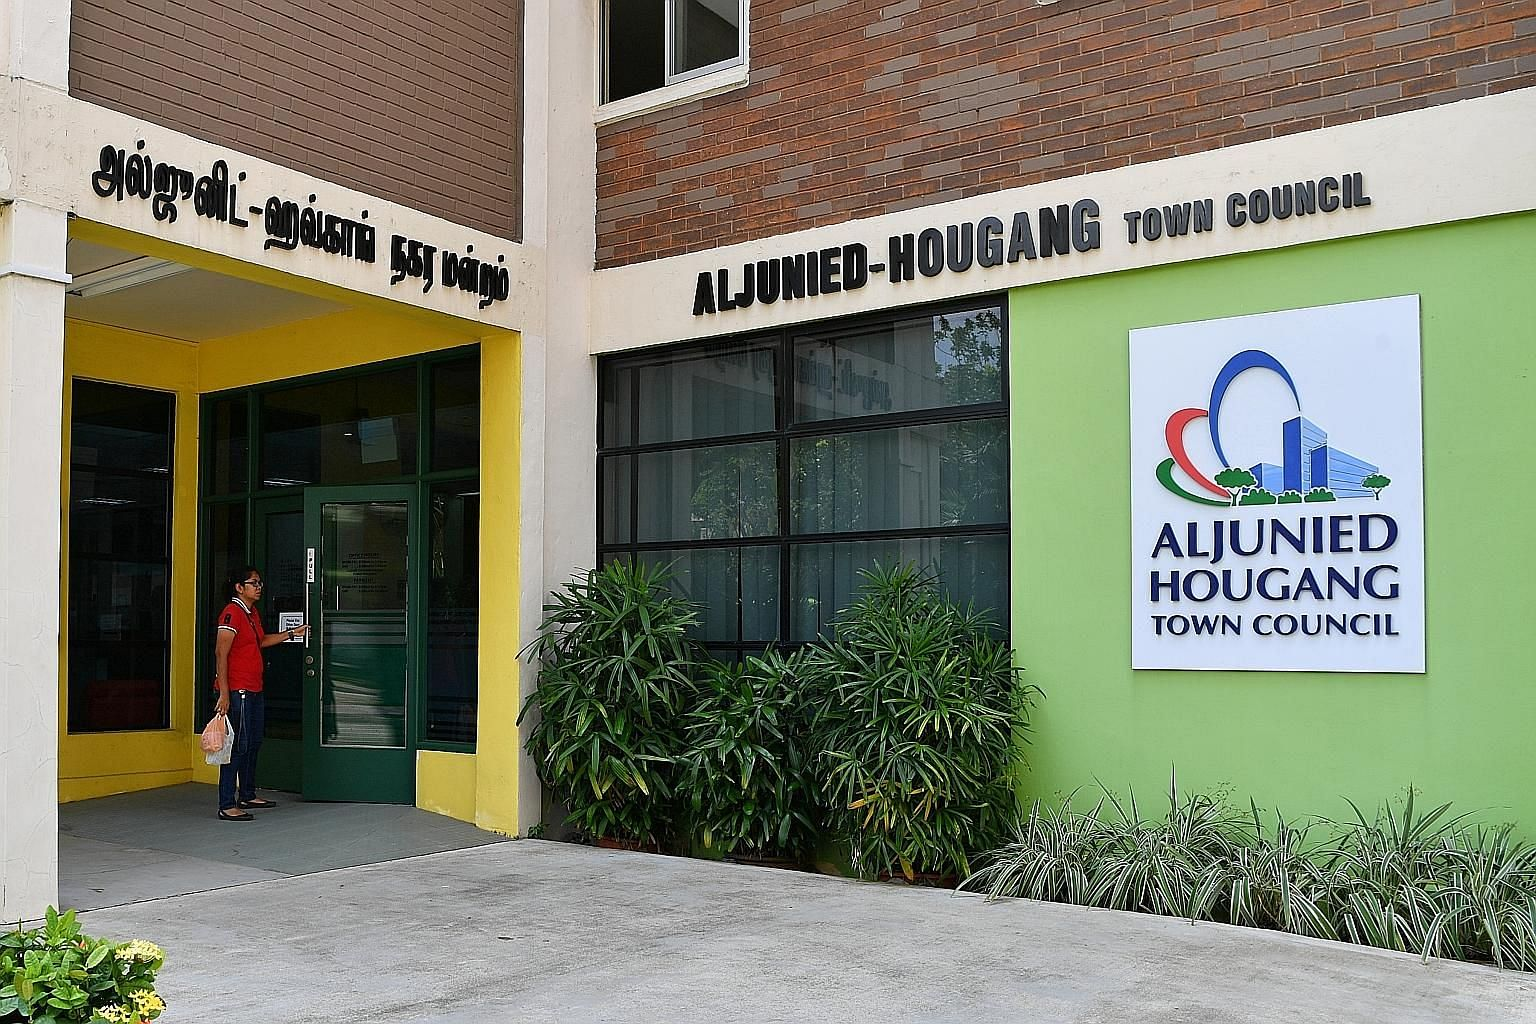 Aljunied-Hougang Town Council got the top score of green for its performance in management of arrears in service and conservancy charges - for the first time since 2012, when the rating system was rolled out.